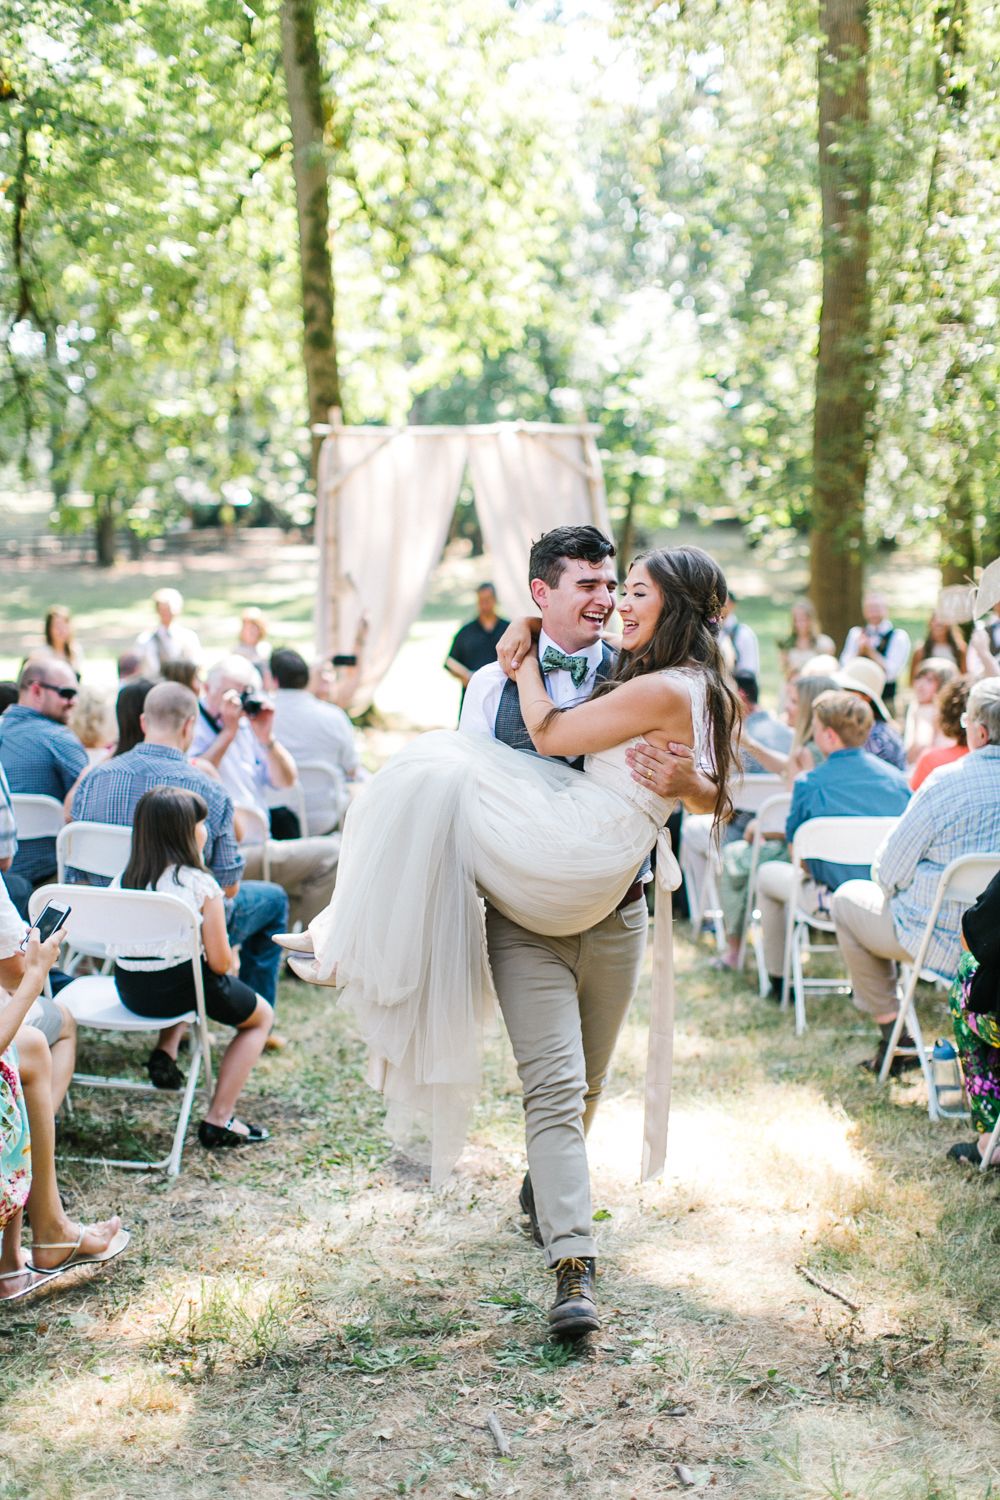 Rustic Oregon Summer Wedding from Maria Lamb Photography - marialamb.co